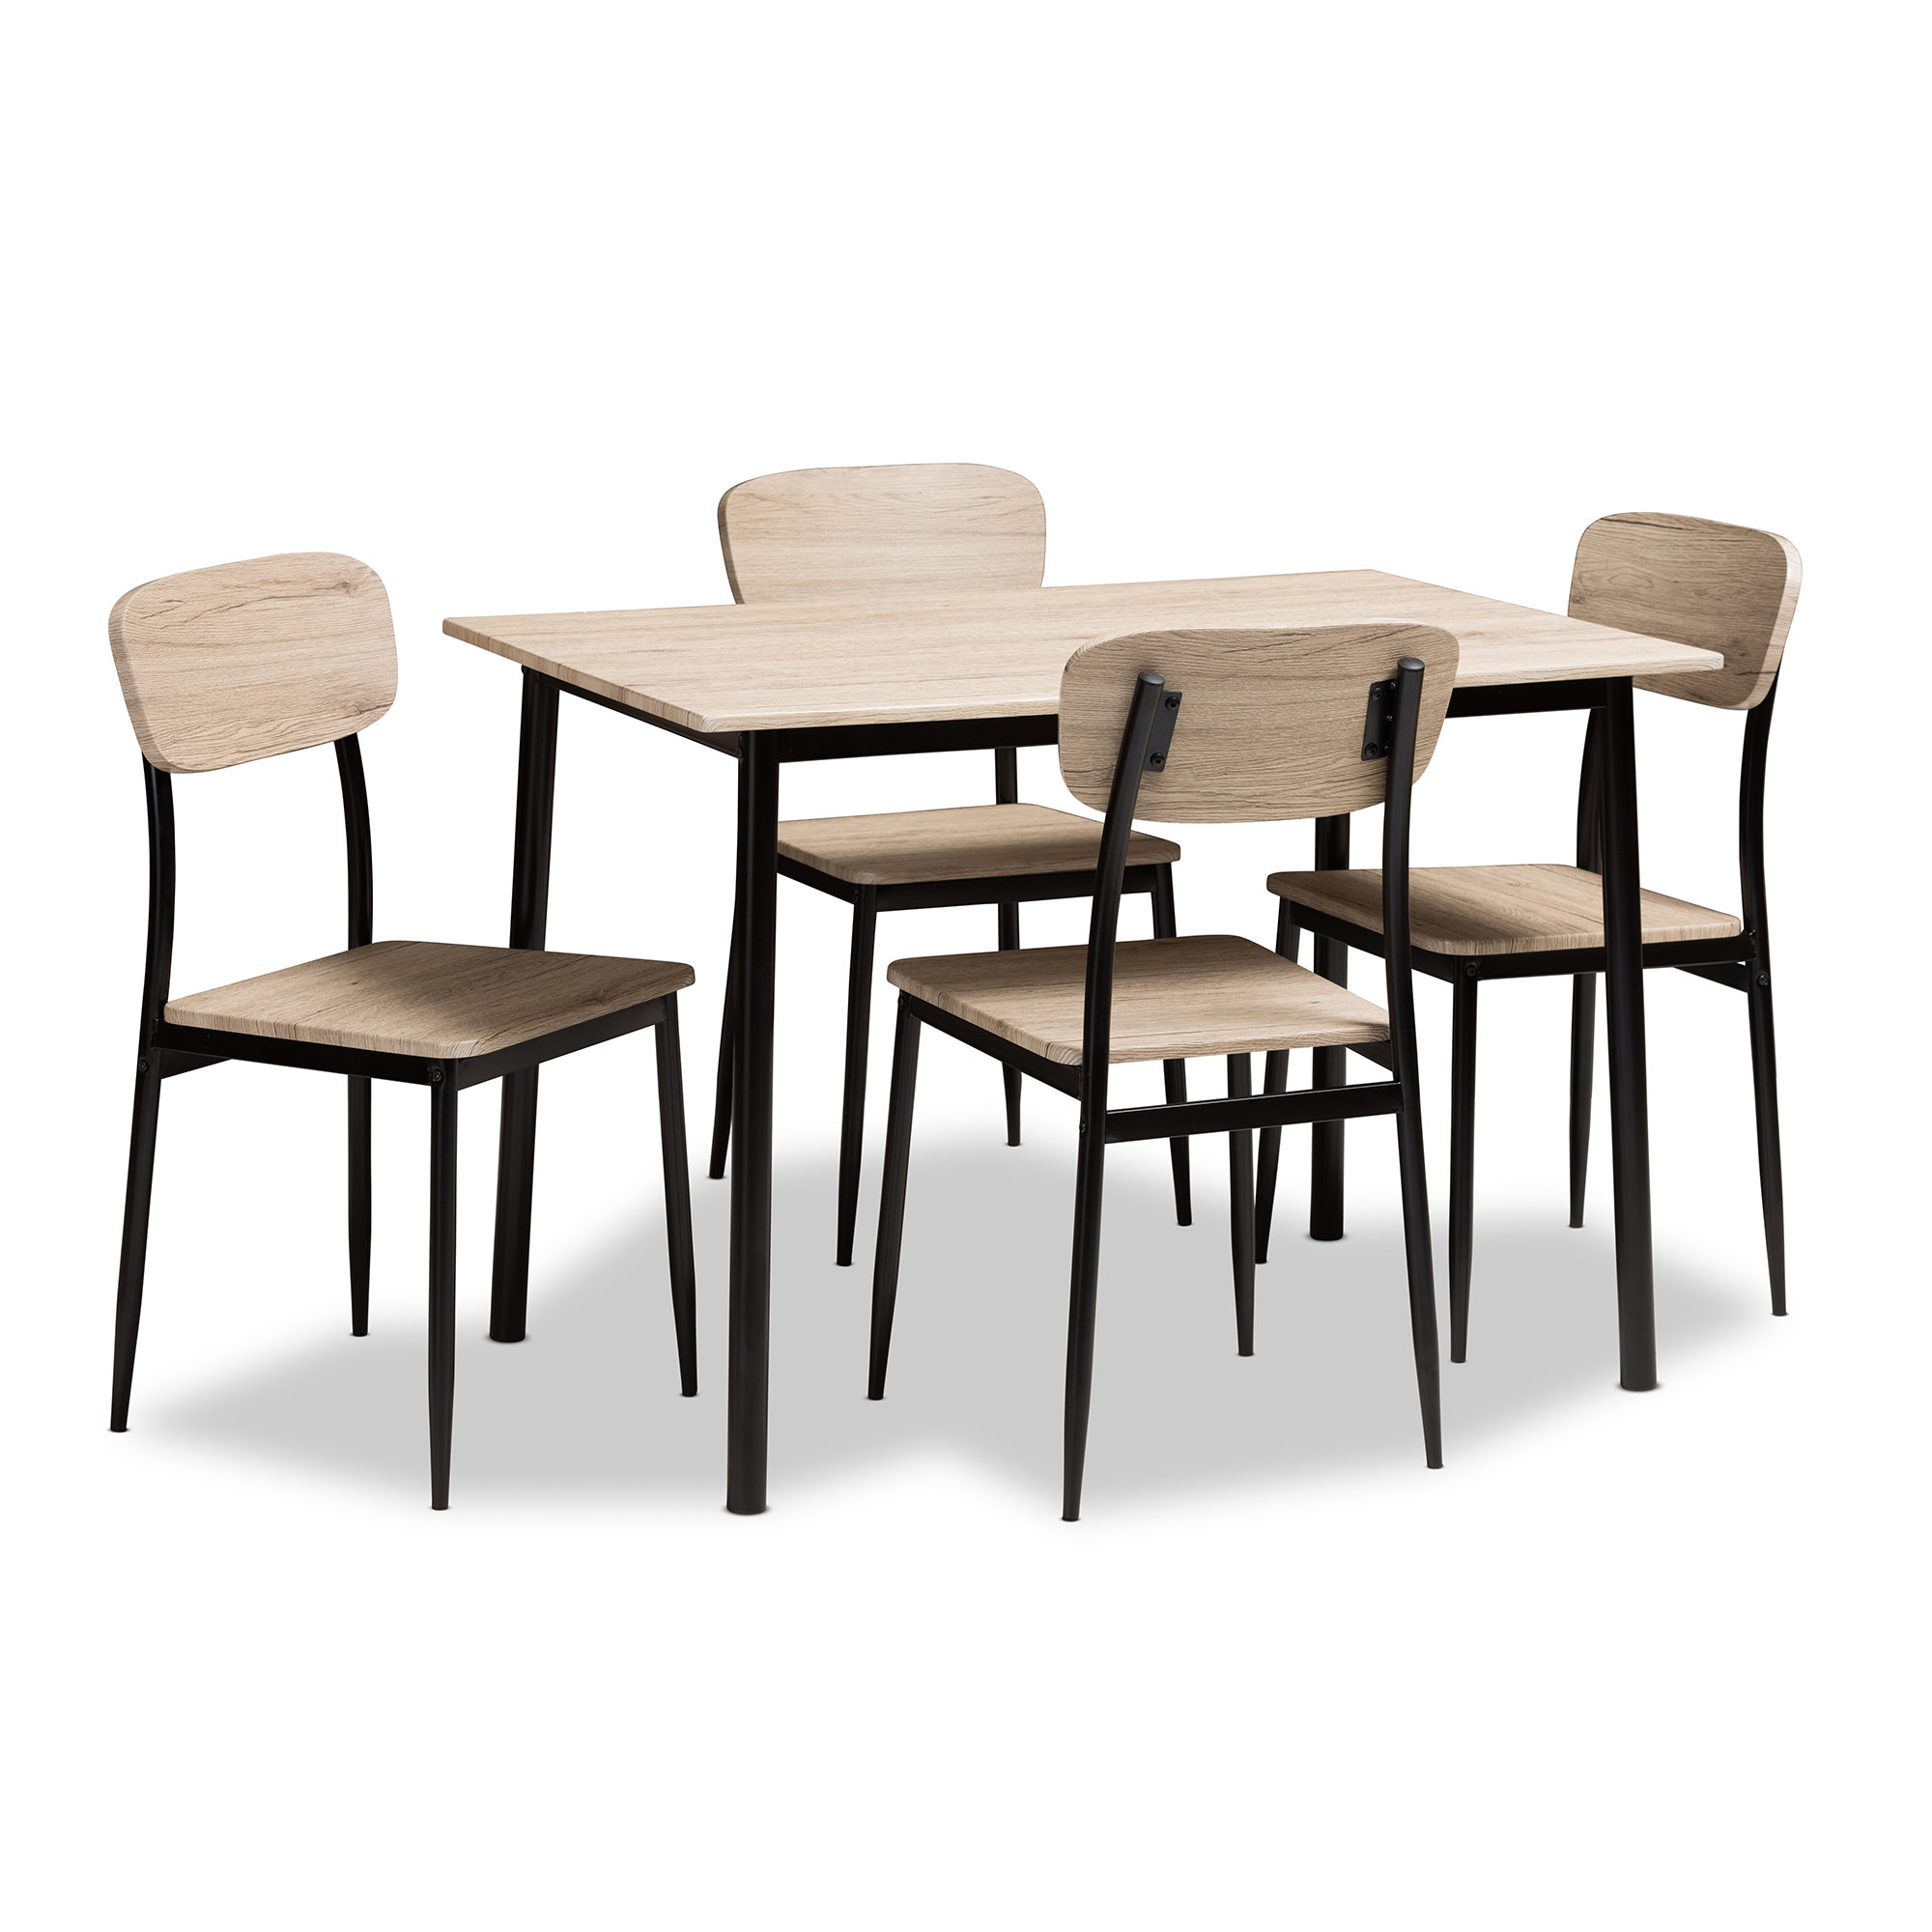 Wayfair Inside Telauges 5 Piece Dining Sets (View 3 of 25)